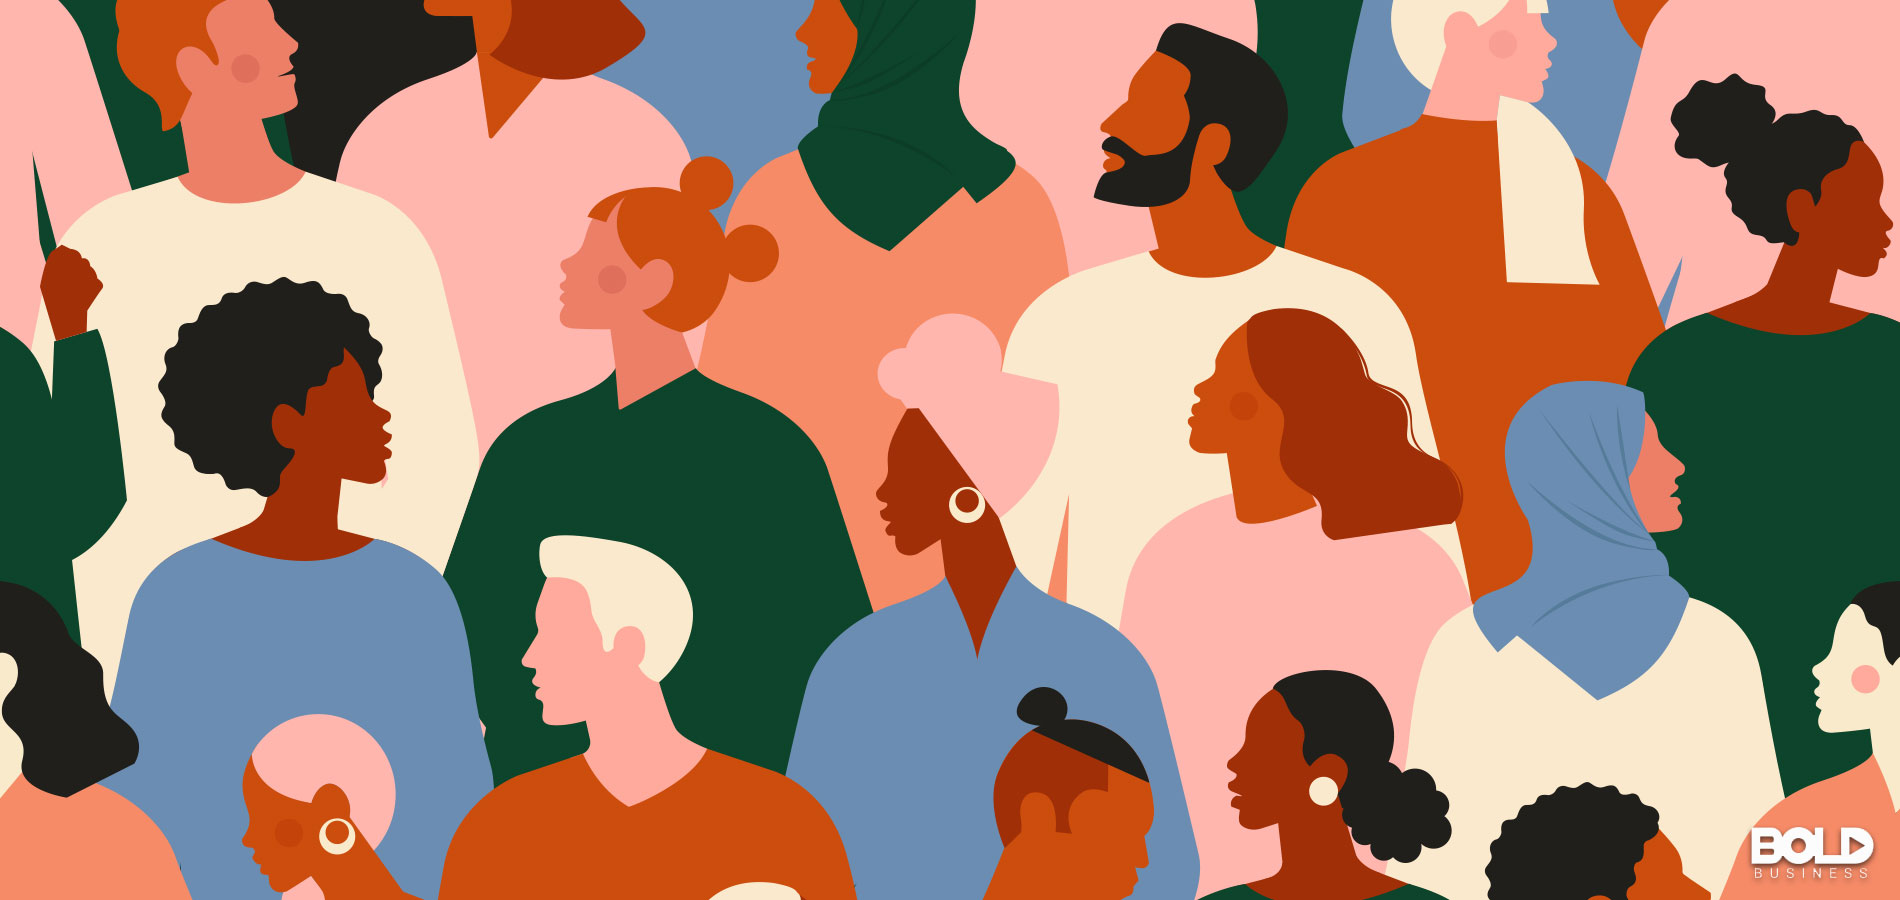 A cartoon of a diverse crowd of people